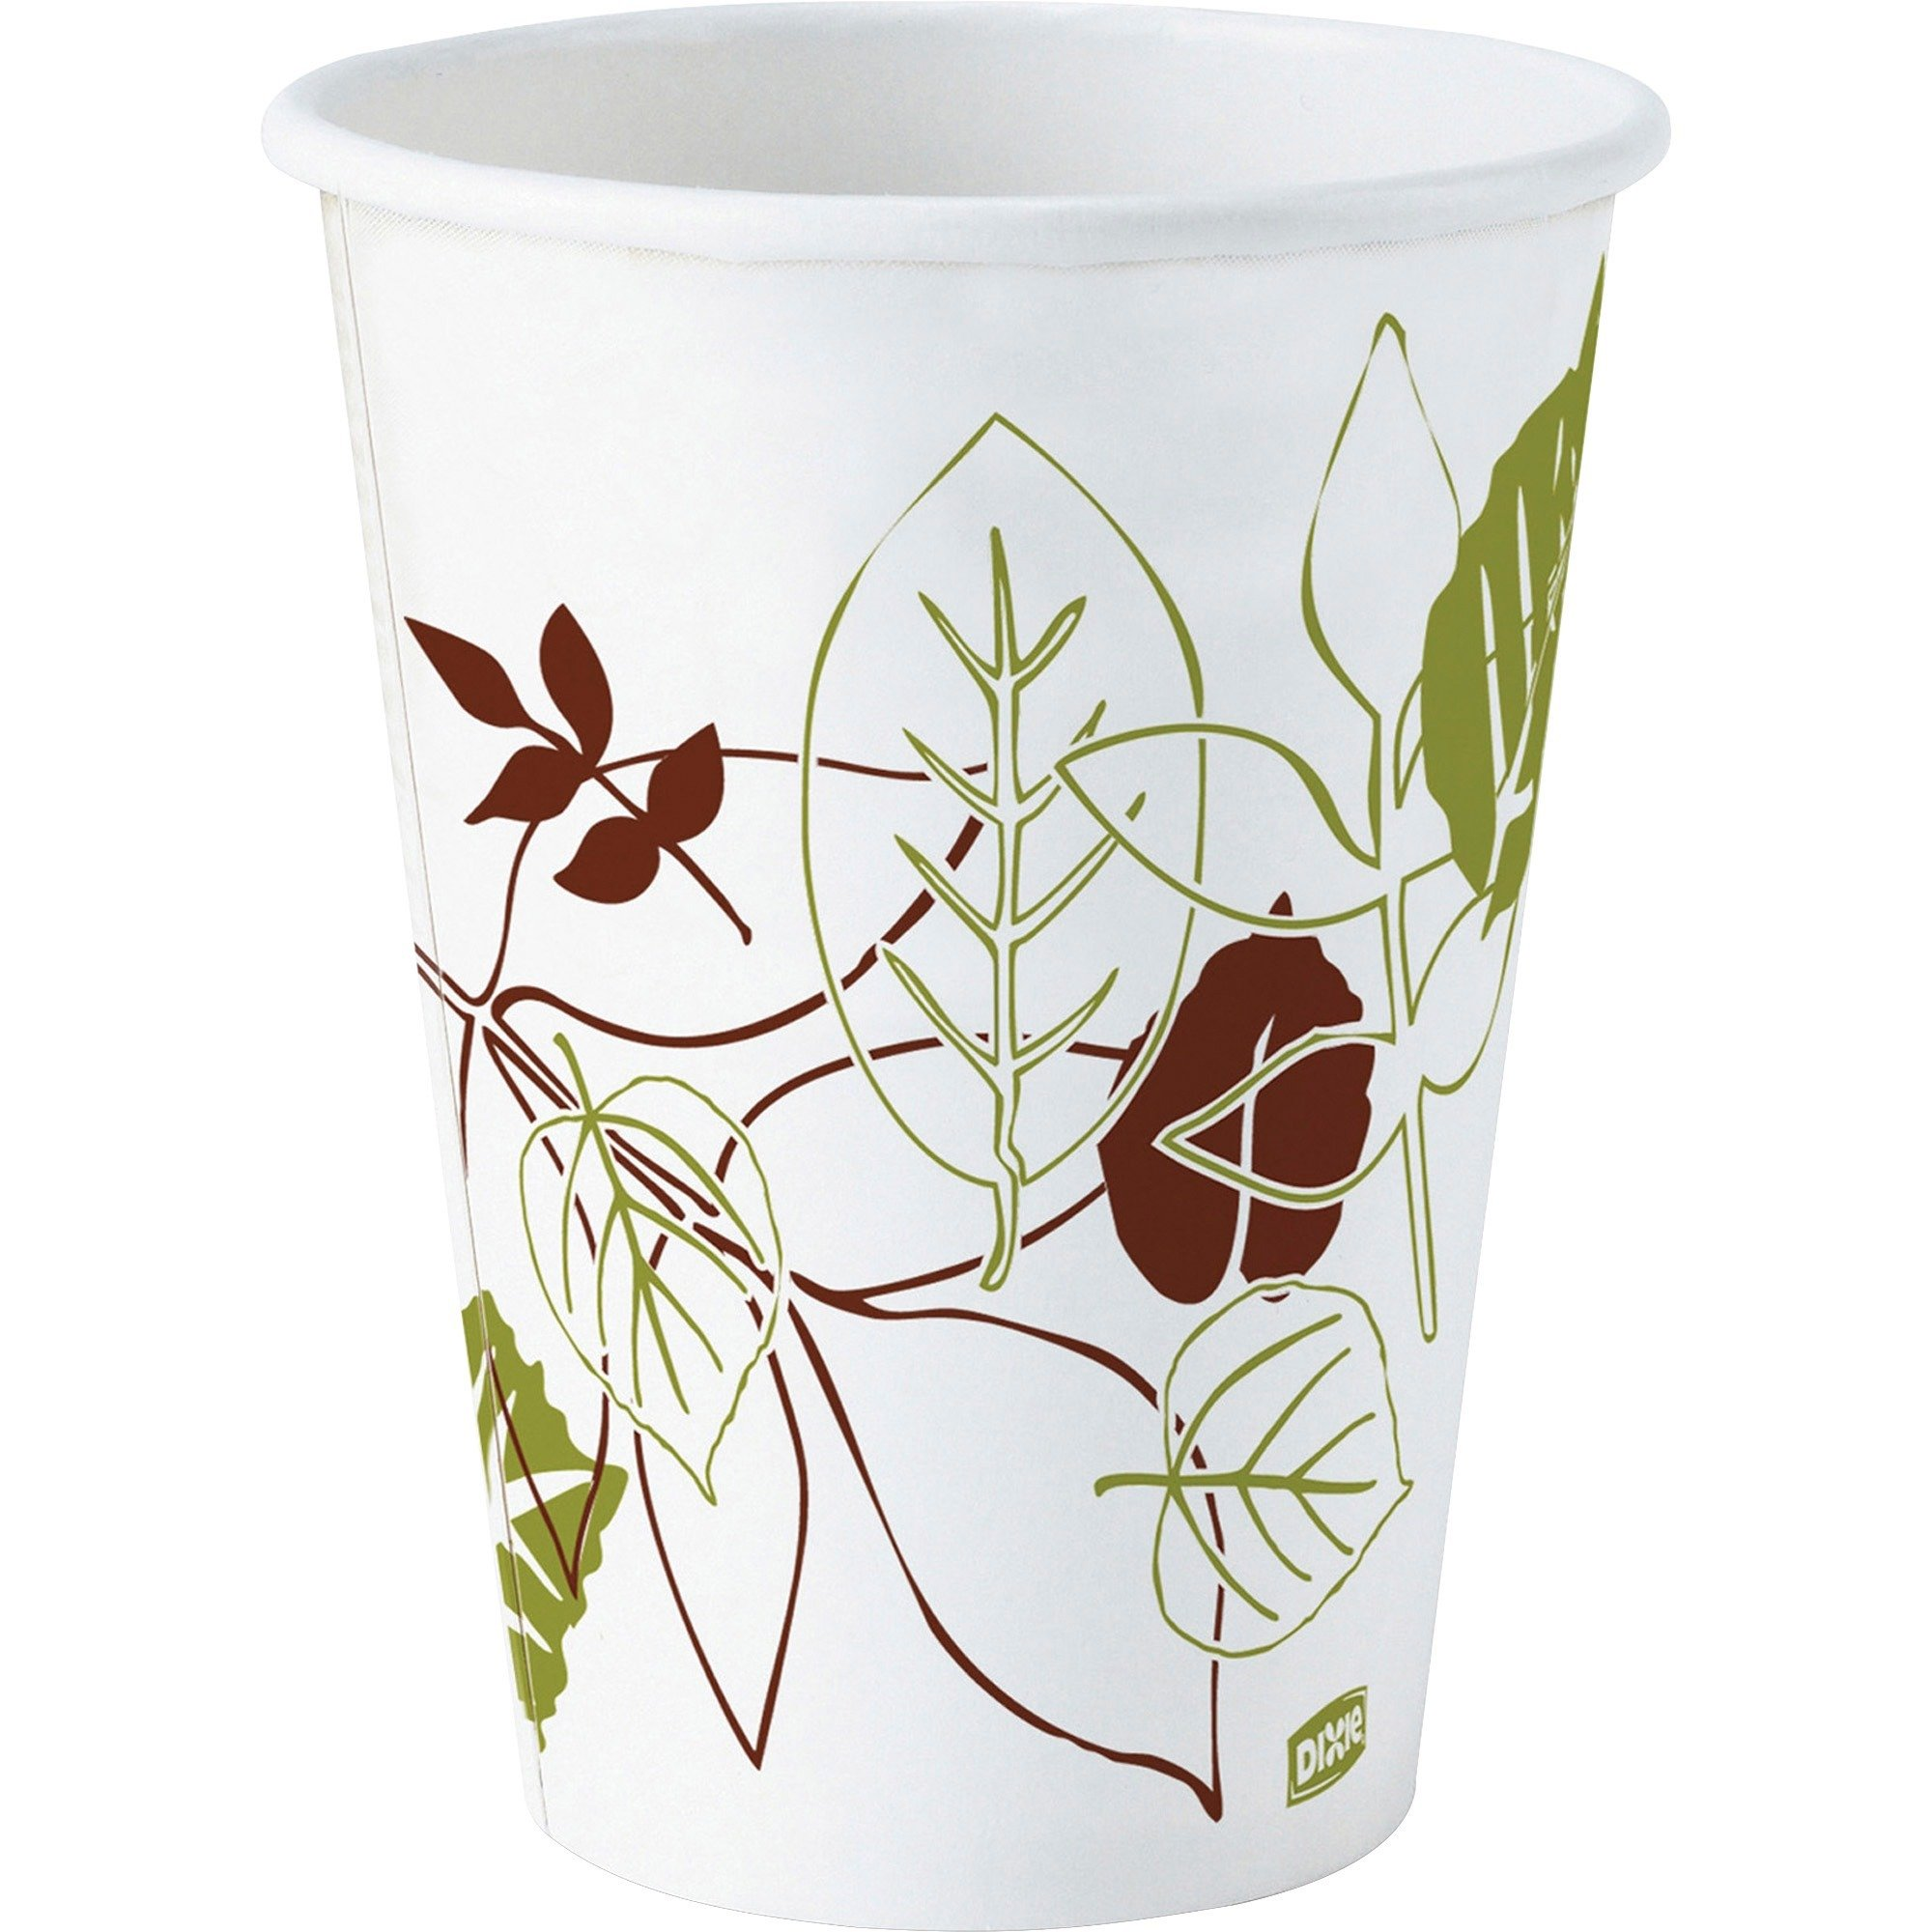 Dixie Pathways WiseSize Cup - 12oz - 500 / Carton - Paper - White